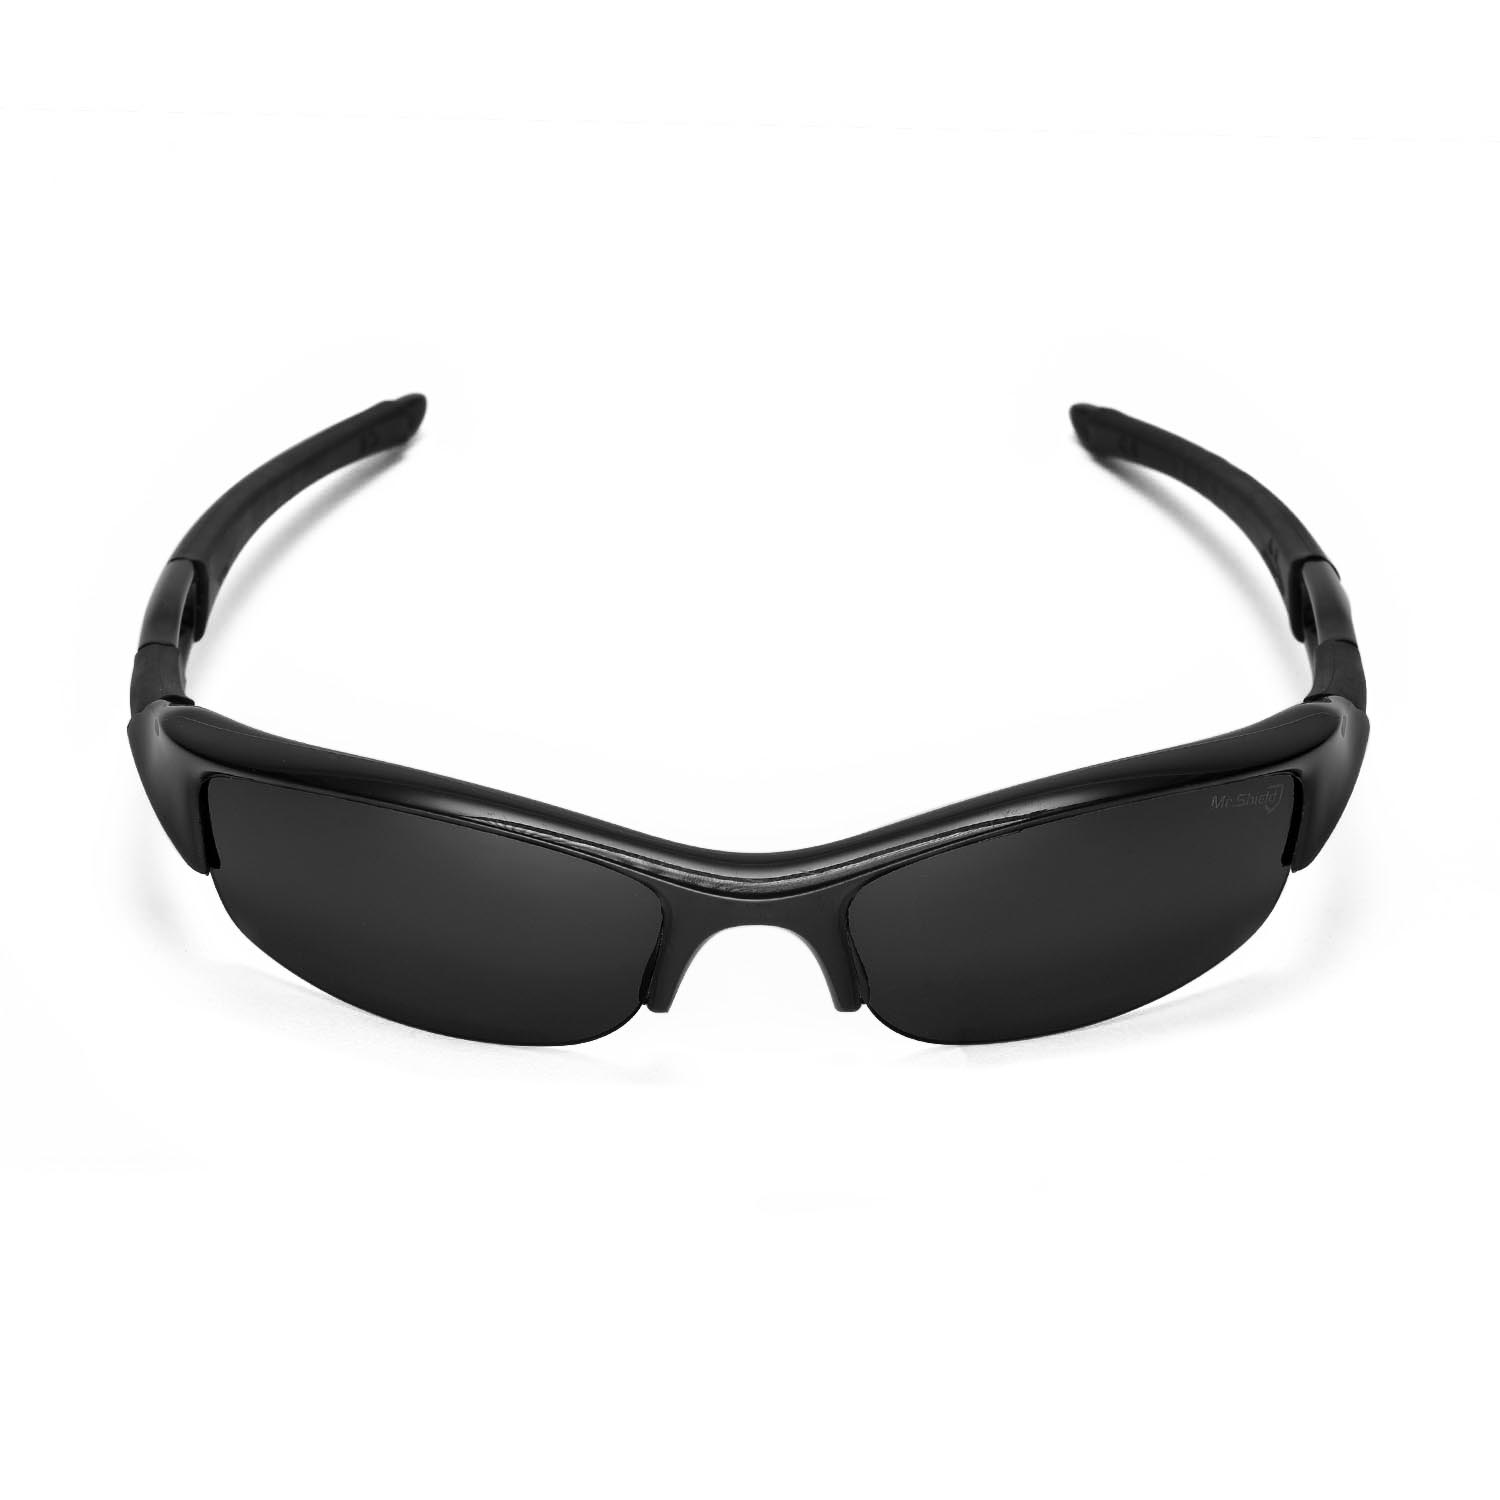 oakley flak jacket 2.0 replacement lenses kyrv  New Walleva Mr Shield Polarized Black Lenses For Oakley Flak Jacket